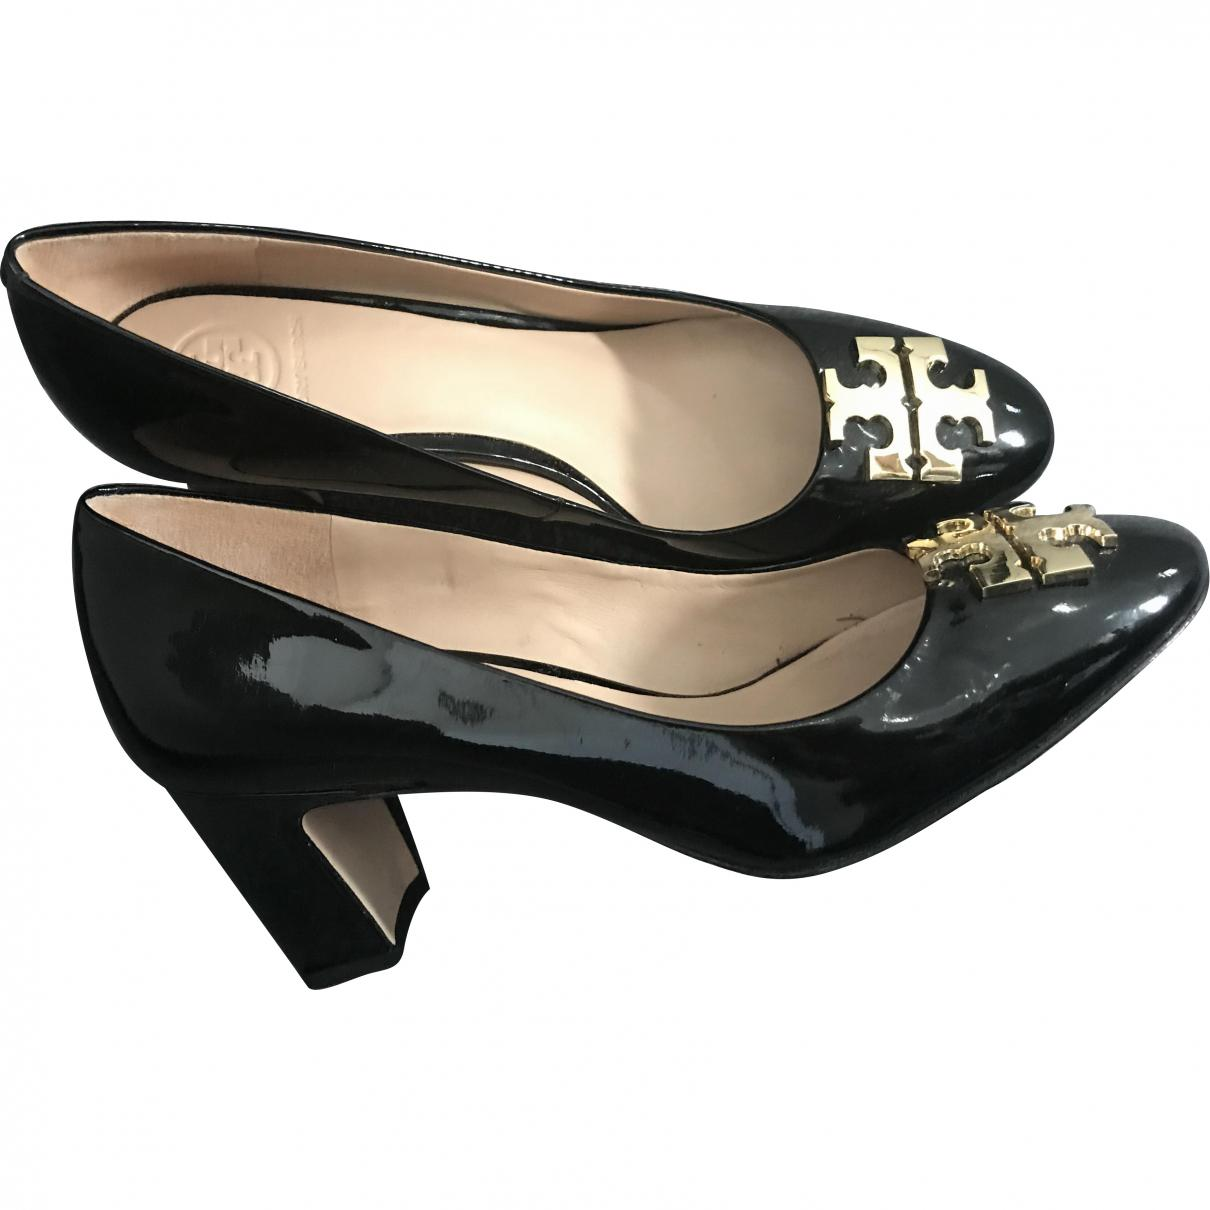 Pre-owned - Patent leather heels Tory Burch pBf1kHg92